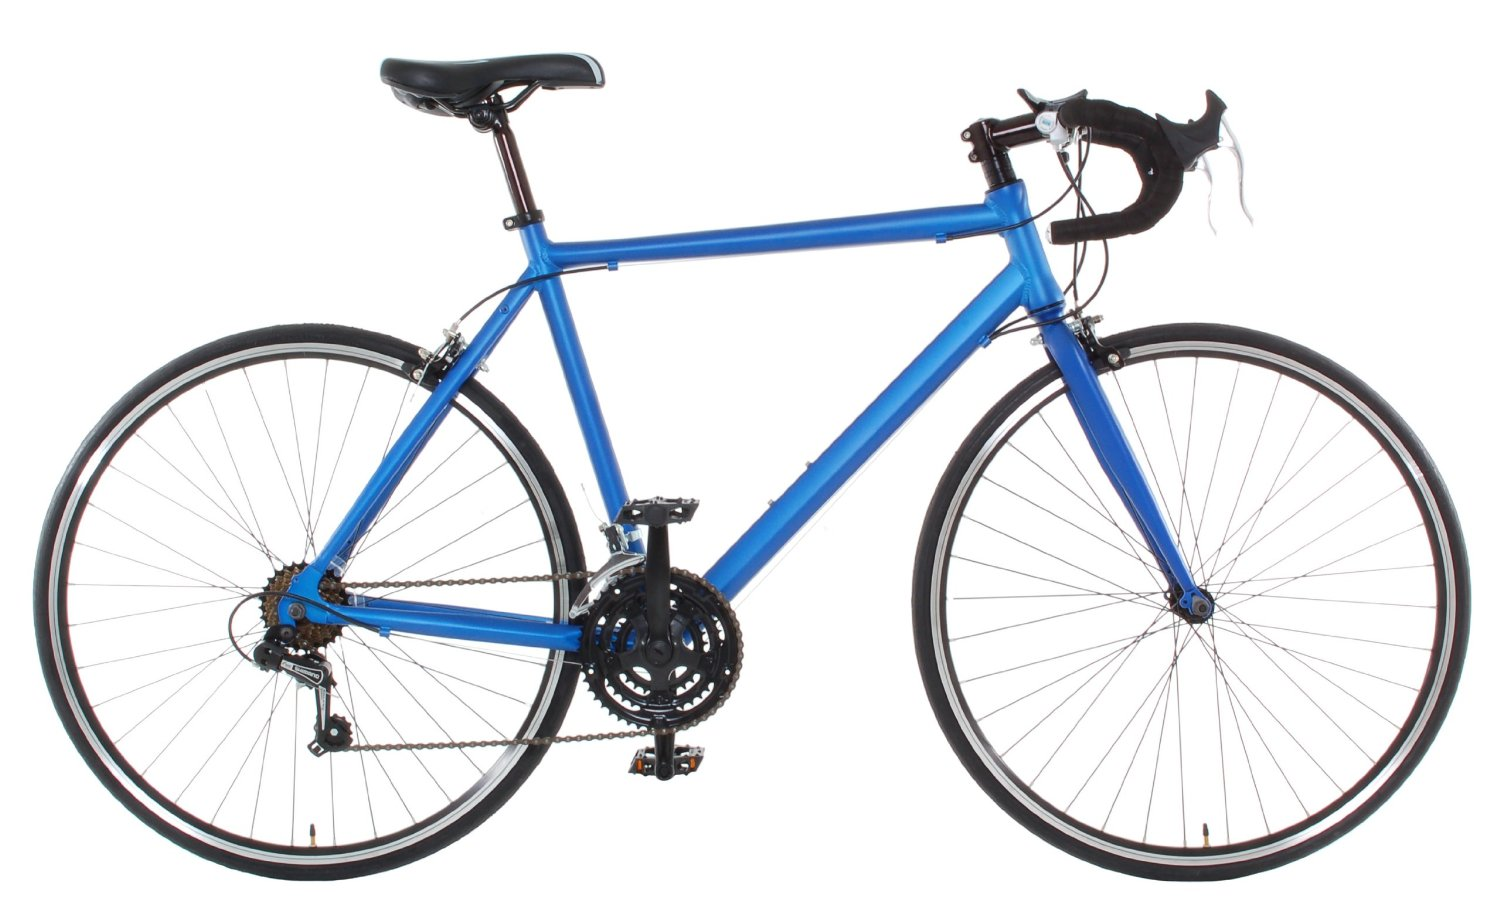 Aluminum Road Bike Commuter Bike Shimano 21 Speed 700c review